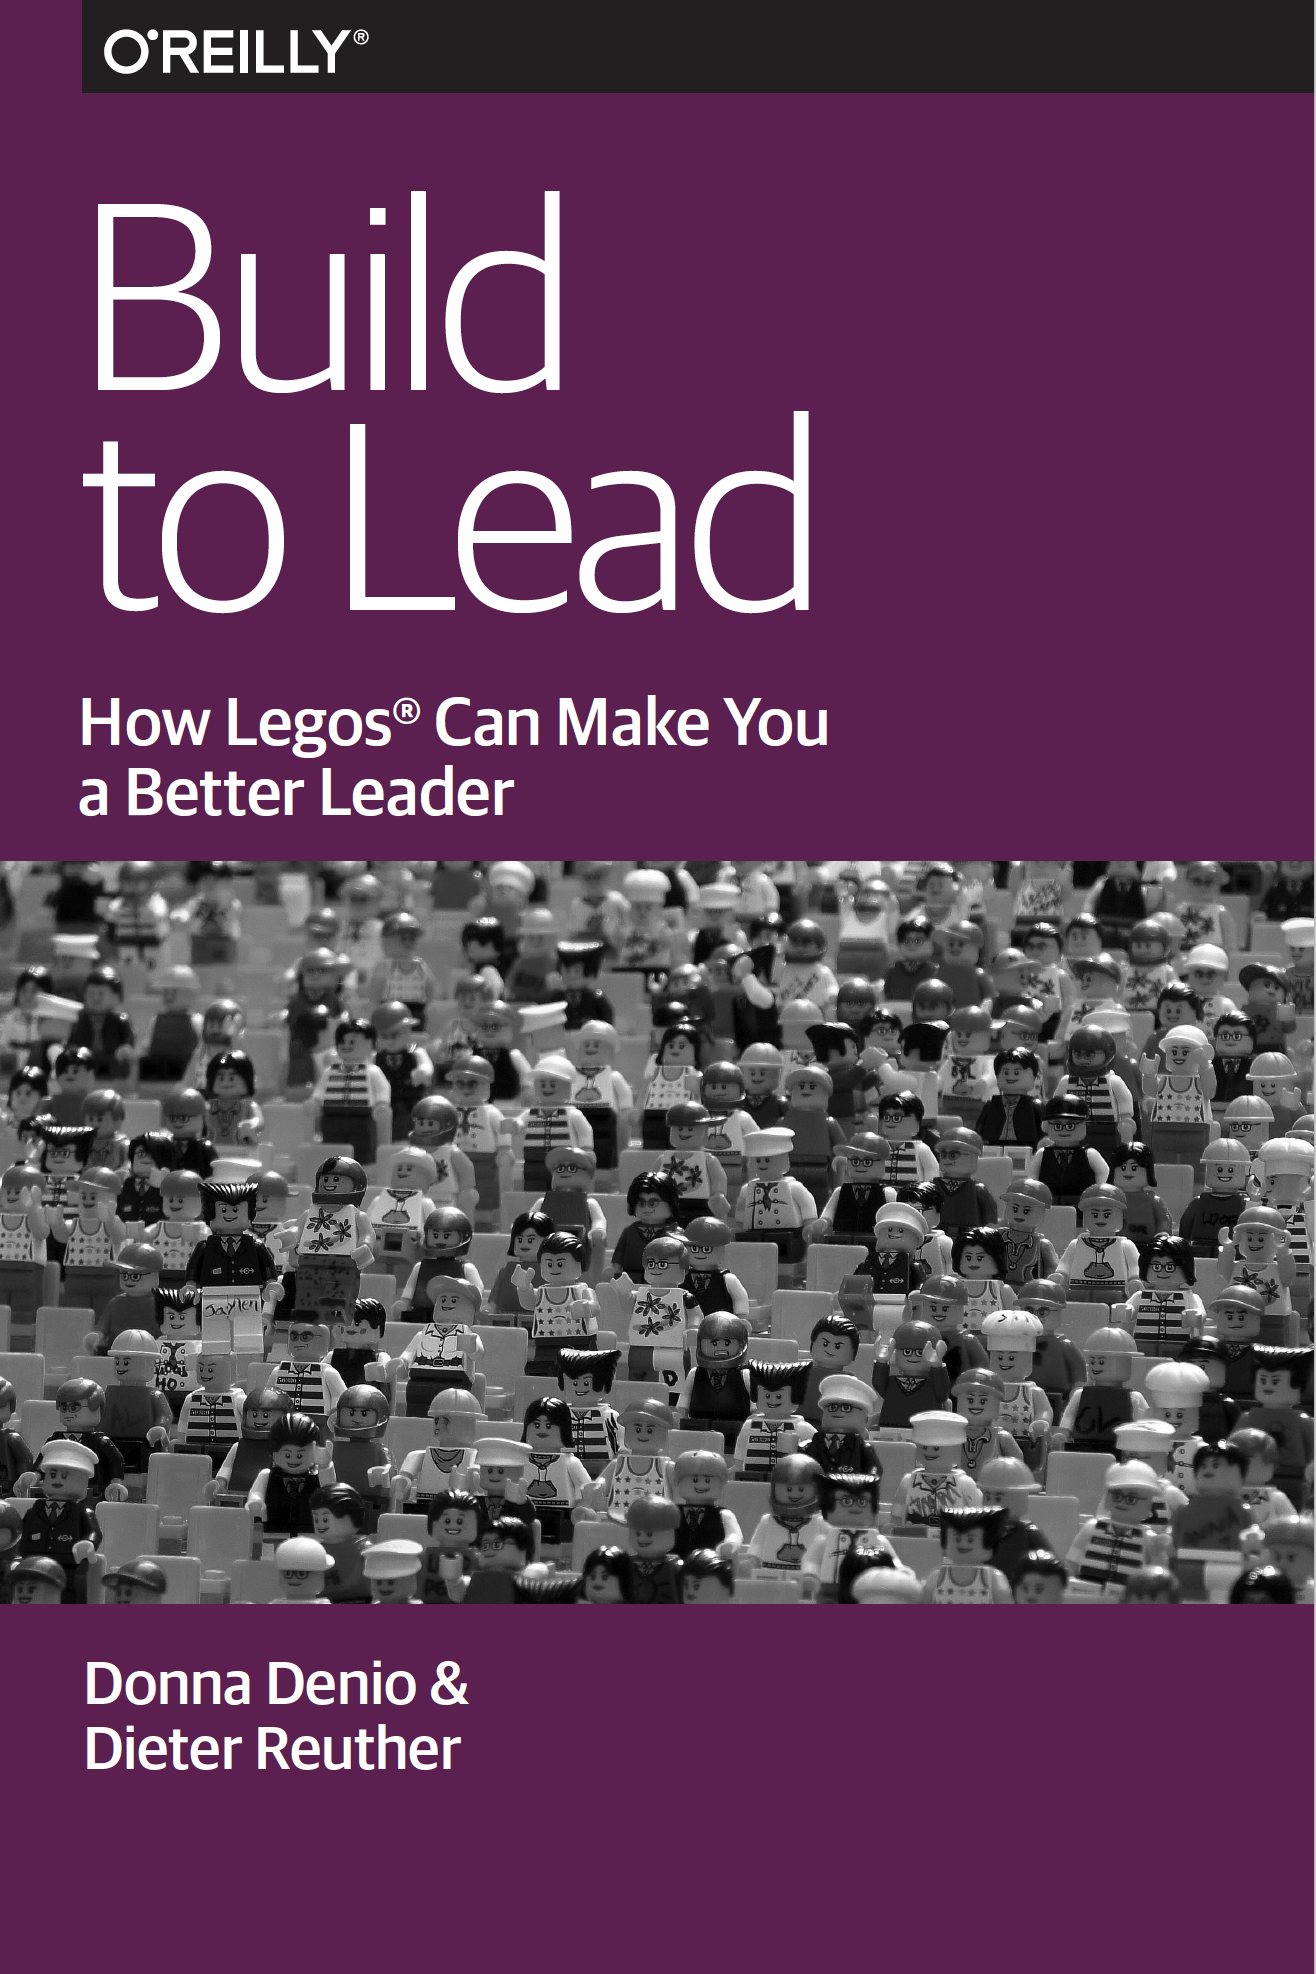 Build to Lead: How Lego bricks can make you a better leader , 2016 by Donna Denio, Dieter Reuther